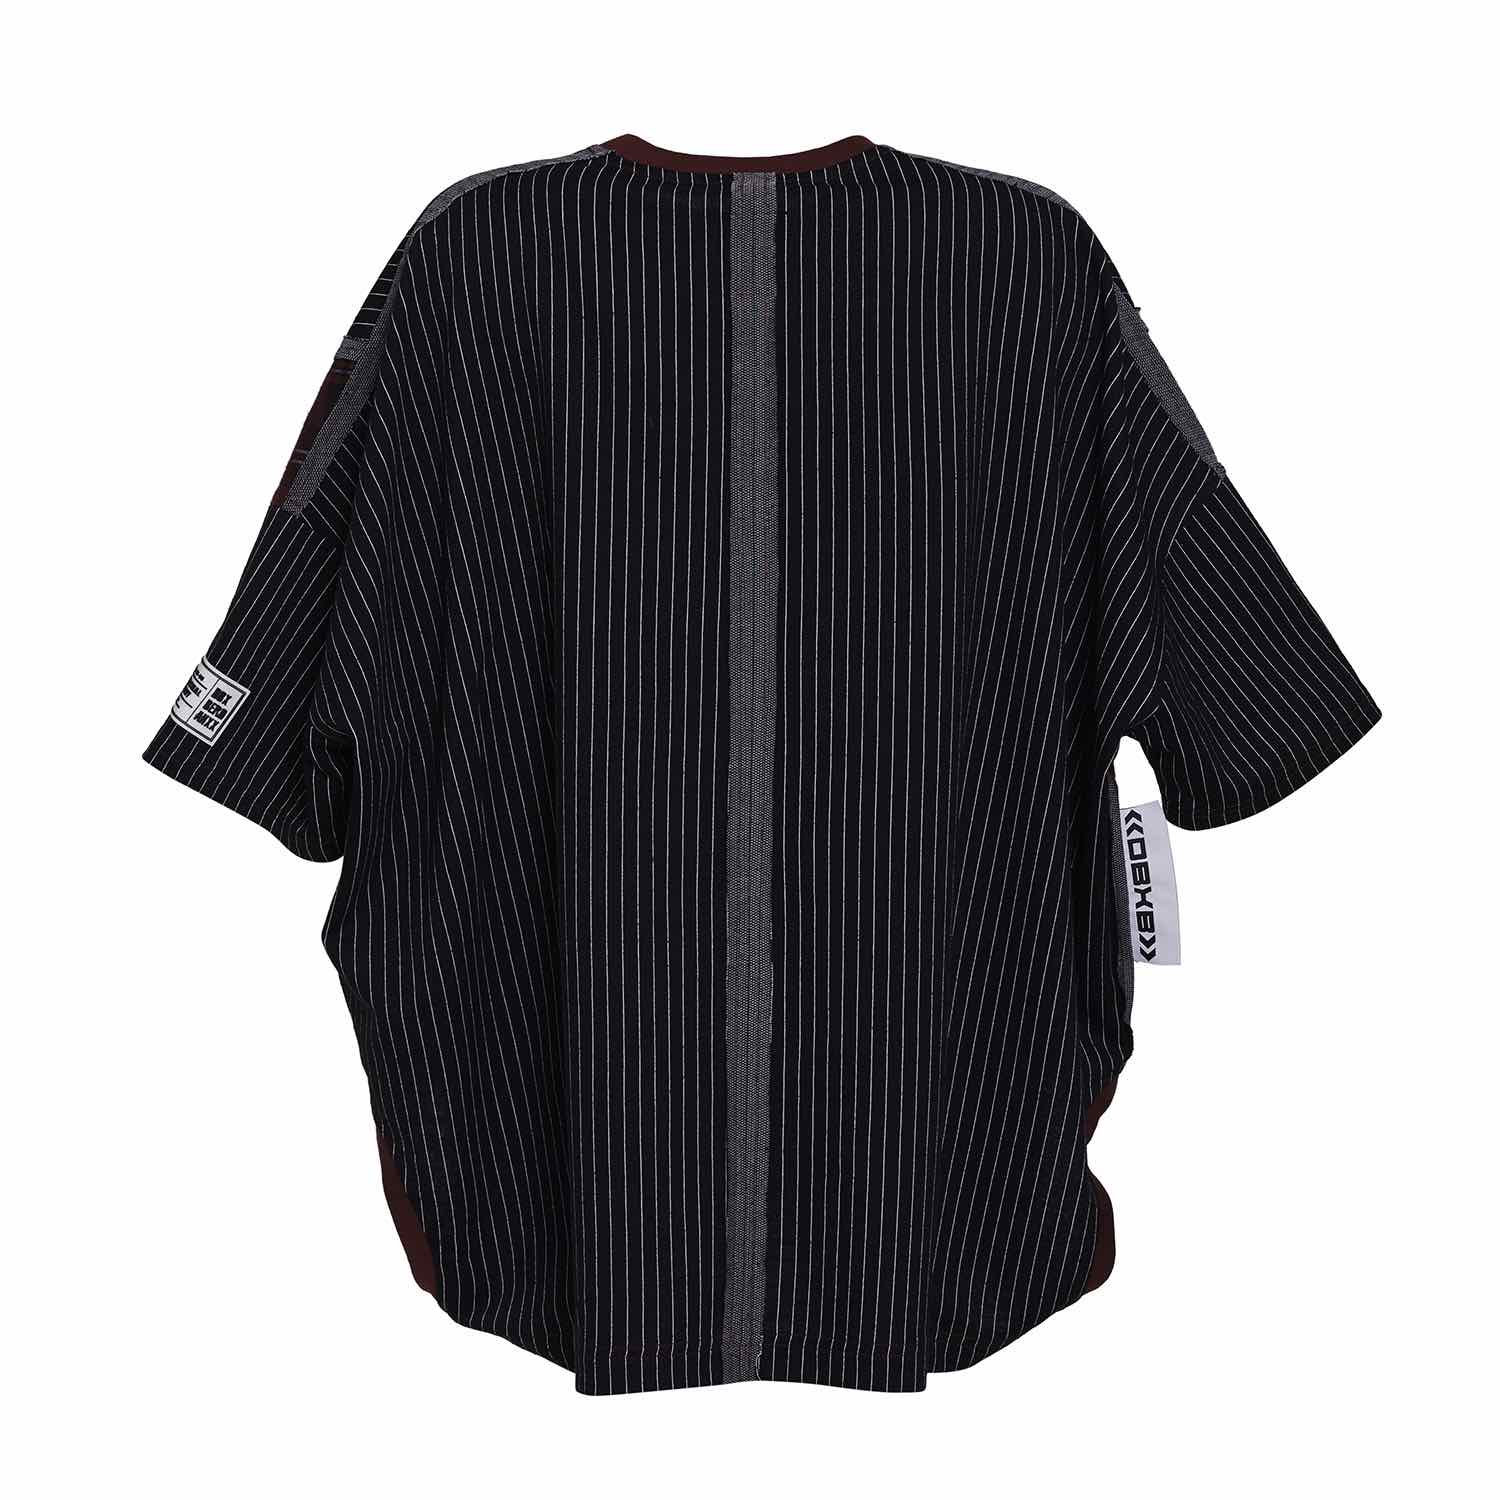 PIN STRIPE UPSIDE DOWN T-SHIRT